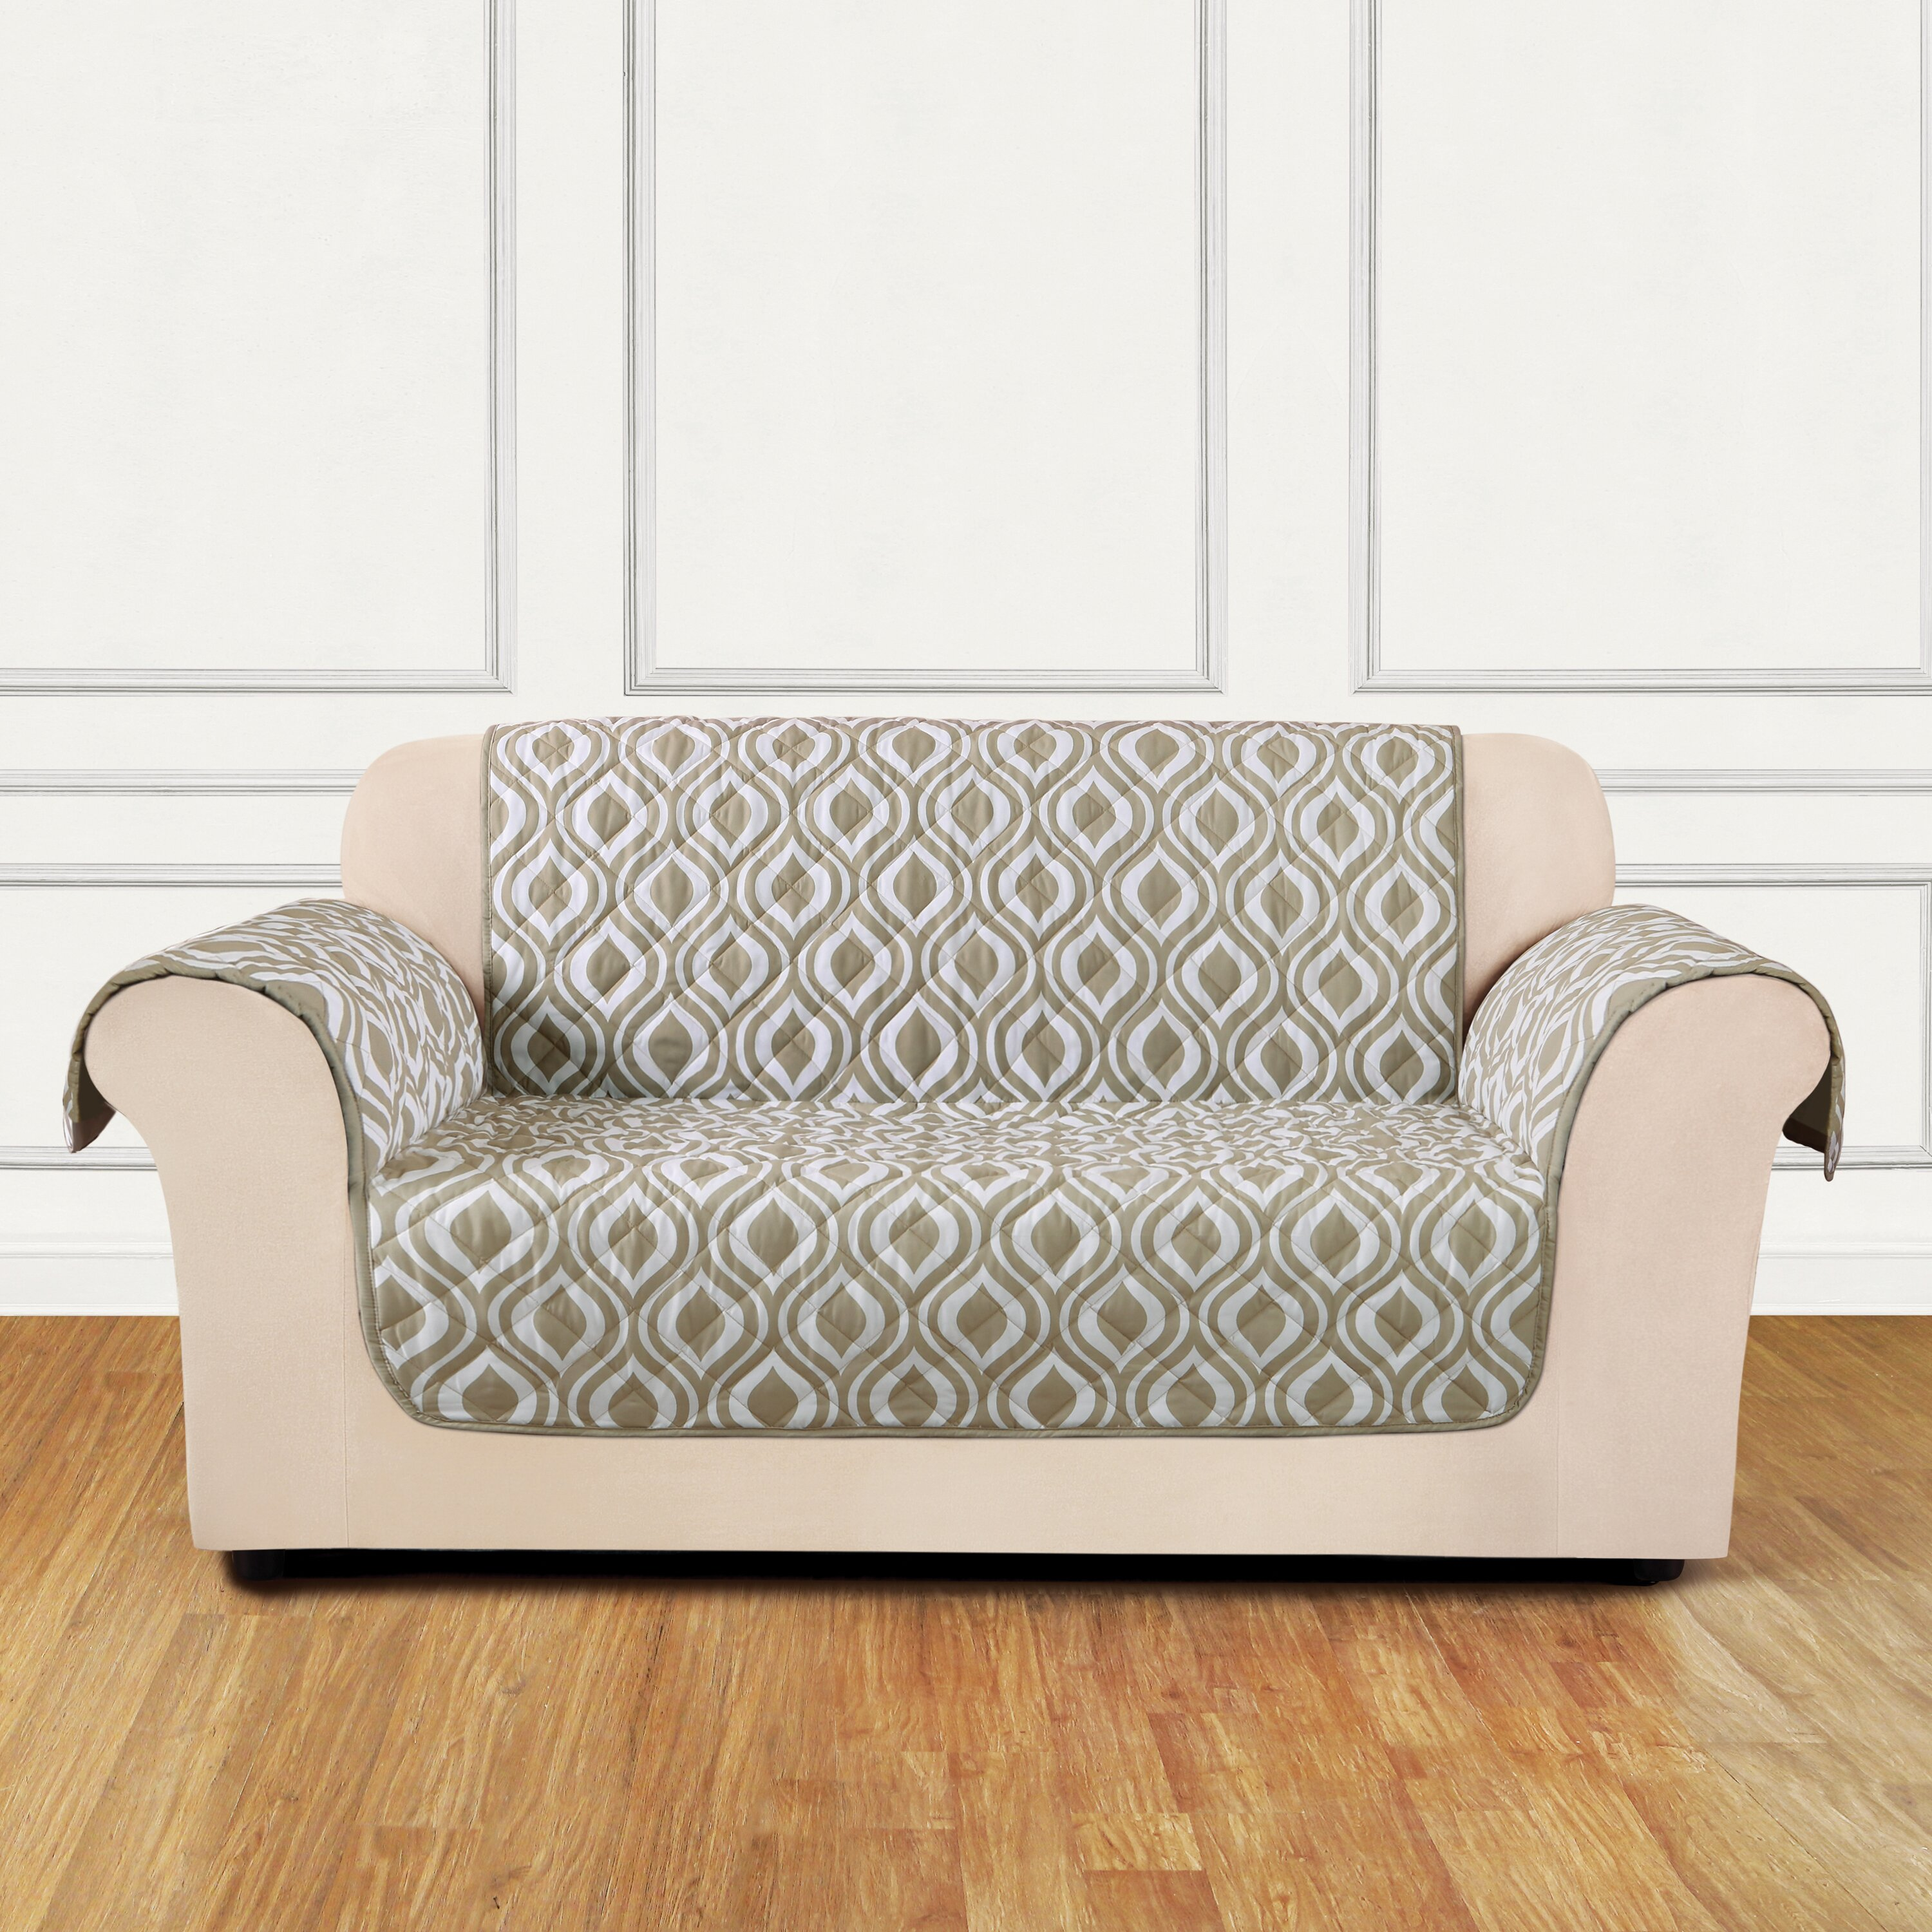 Sure Fit Furniture Flair Flash Loveseat T Cushion Slipcover Reviews Wayfair